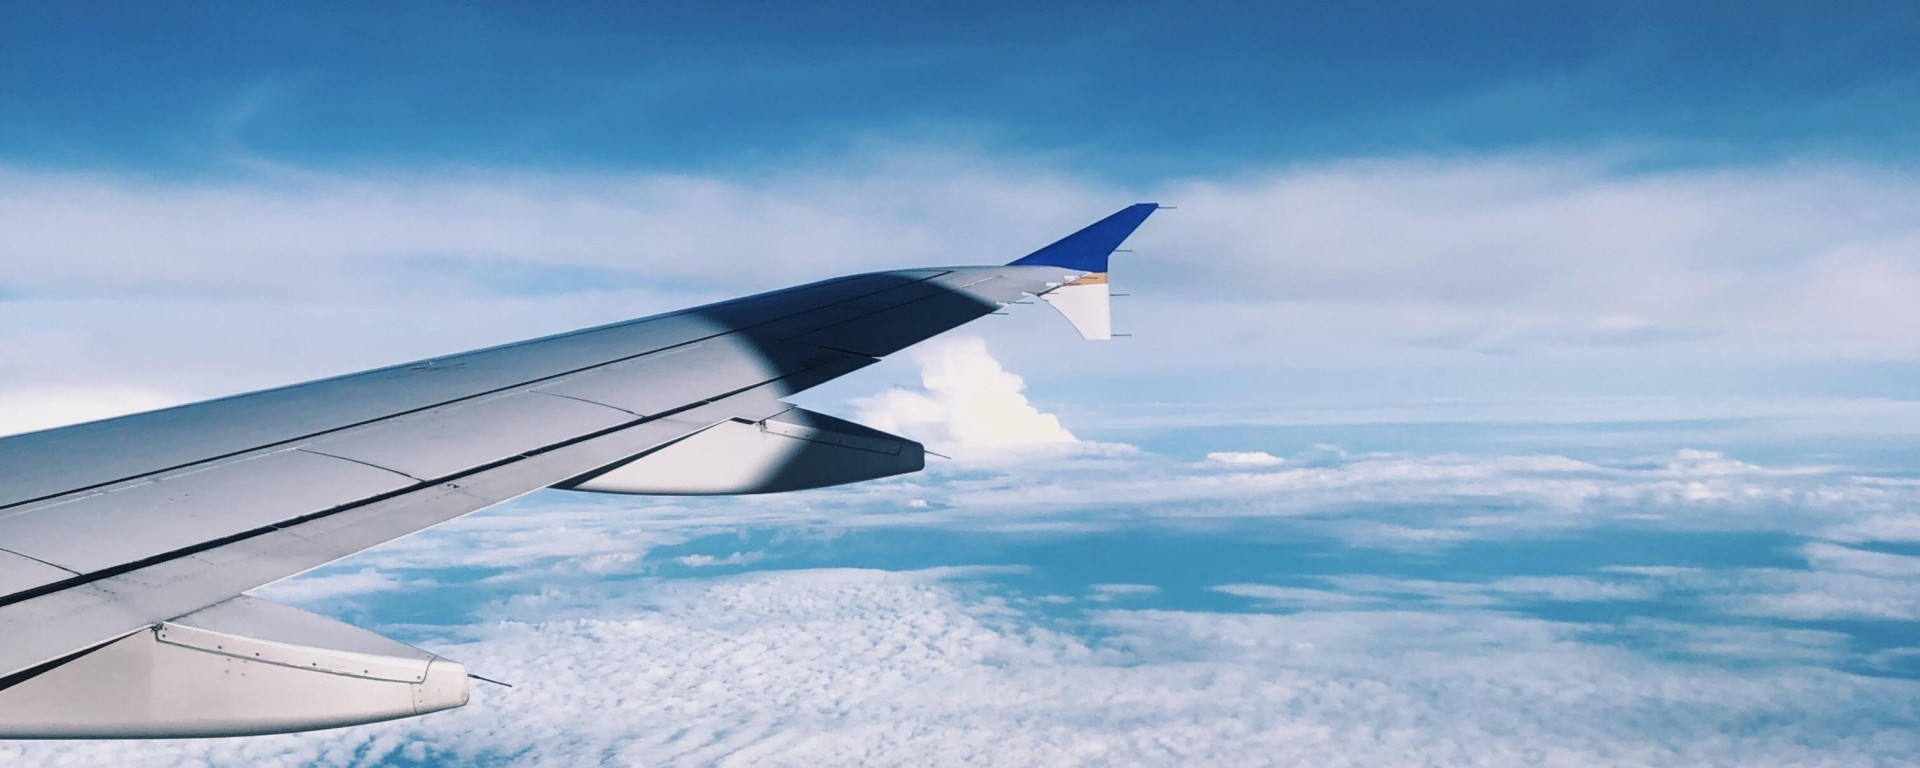 An airplane wing overlooking clouds and the ocean.